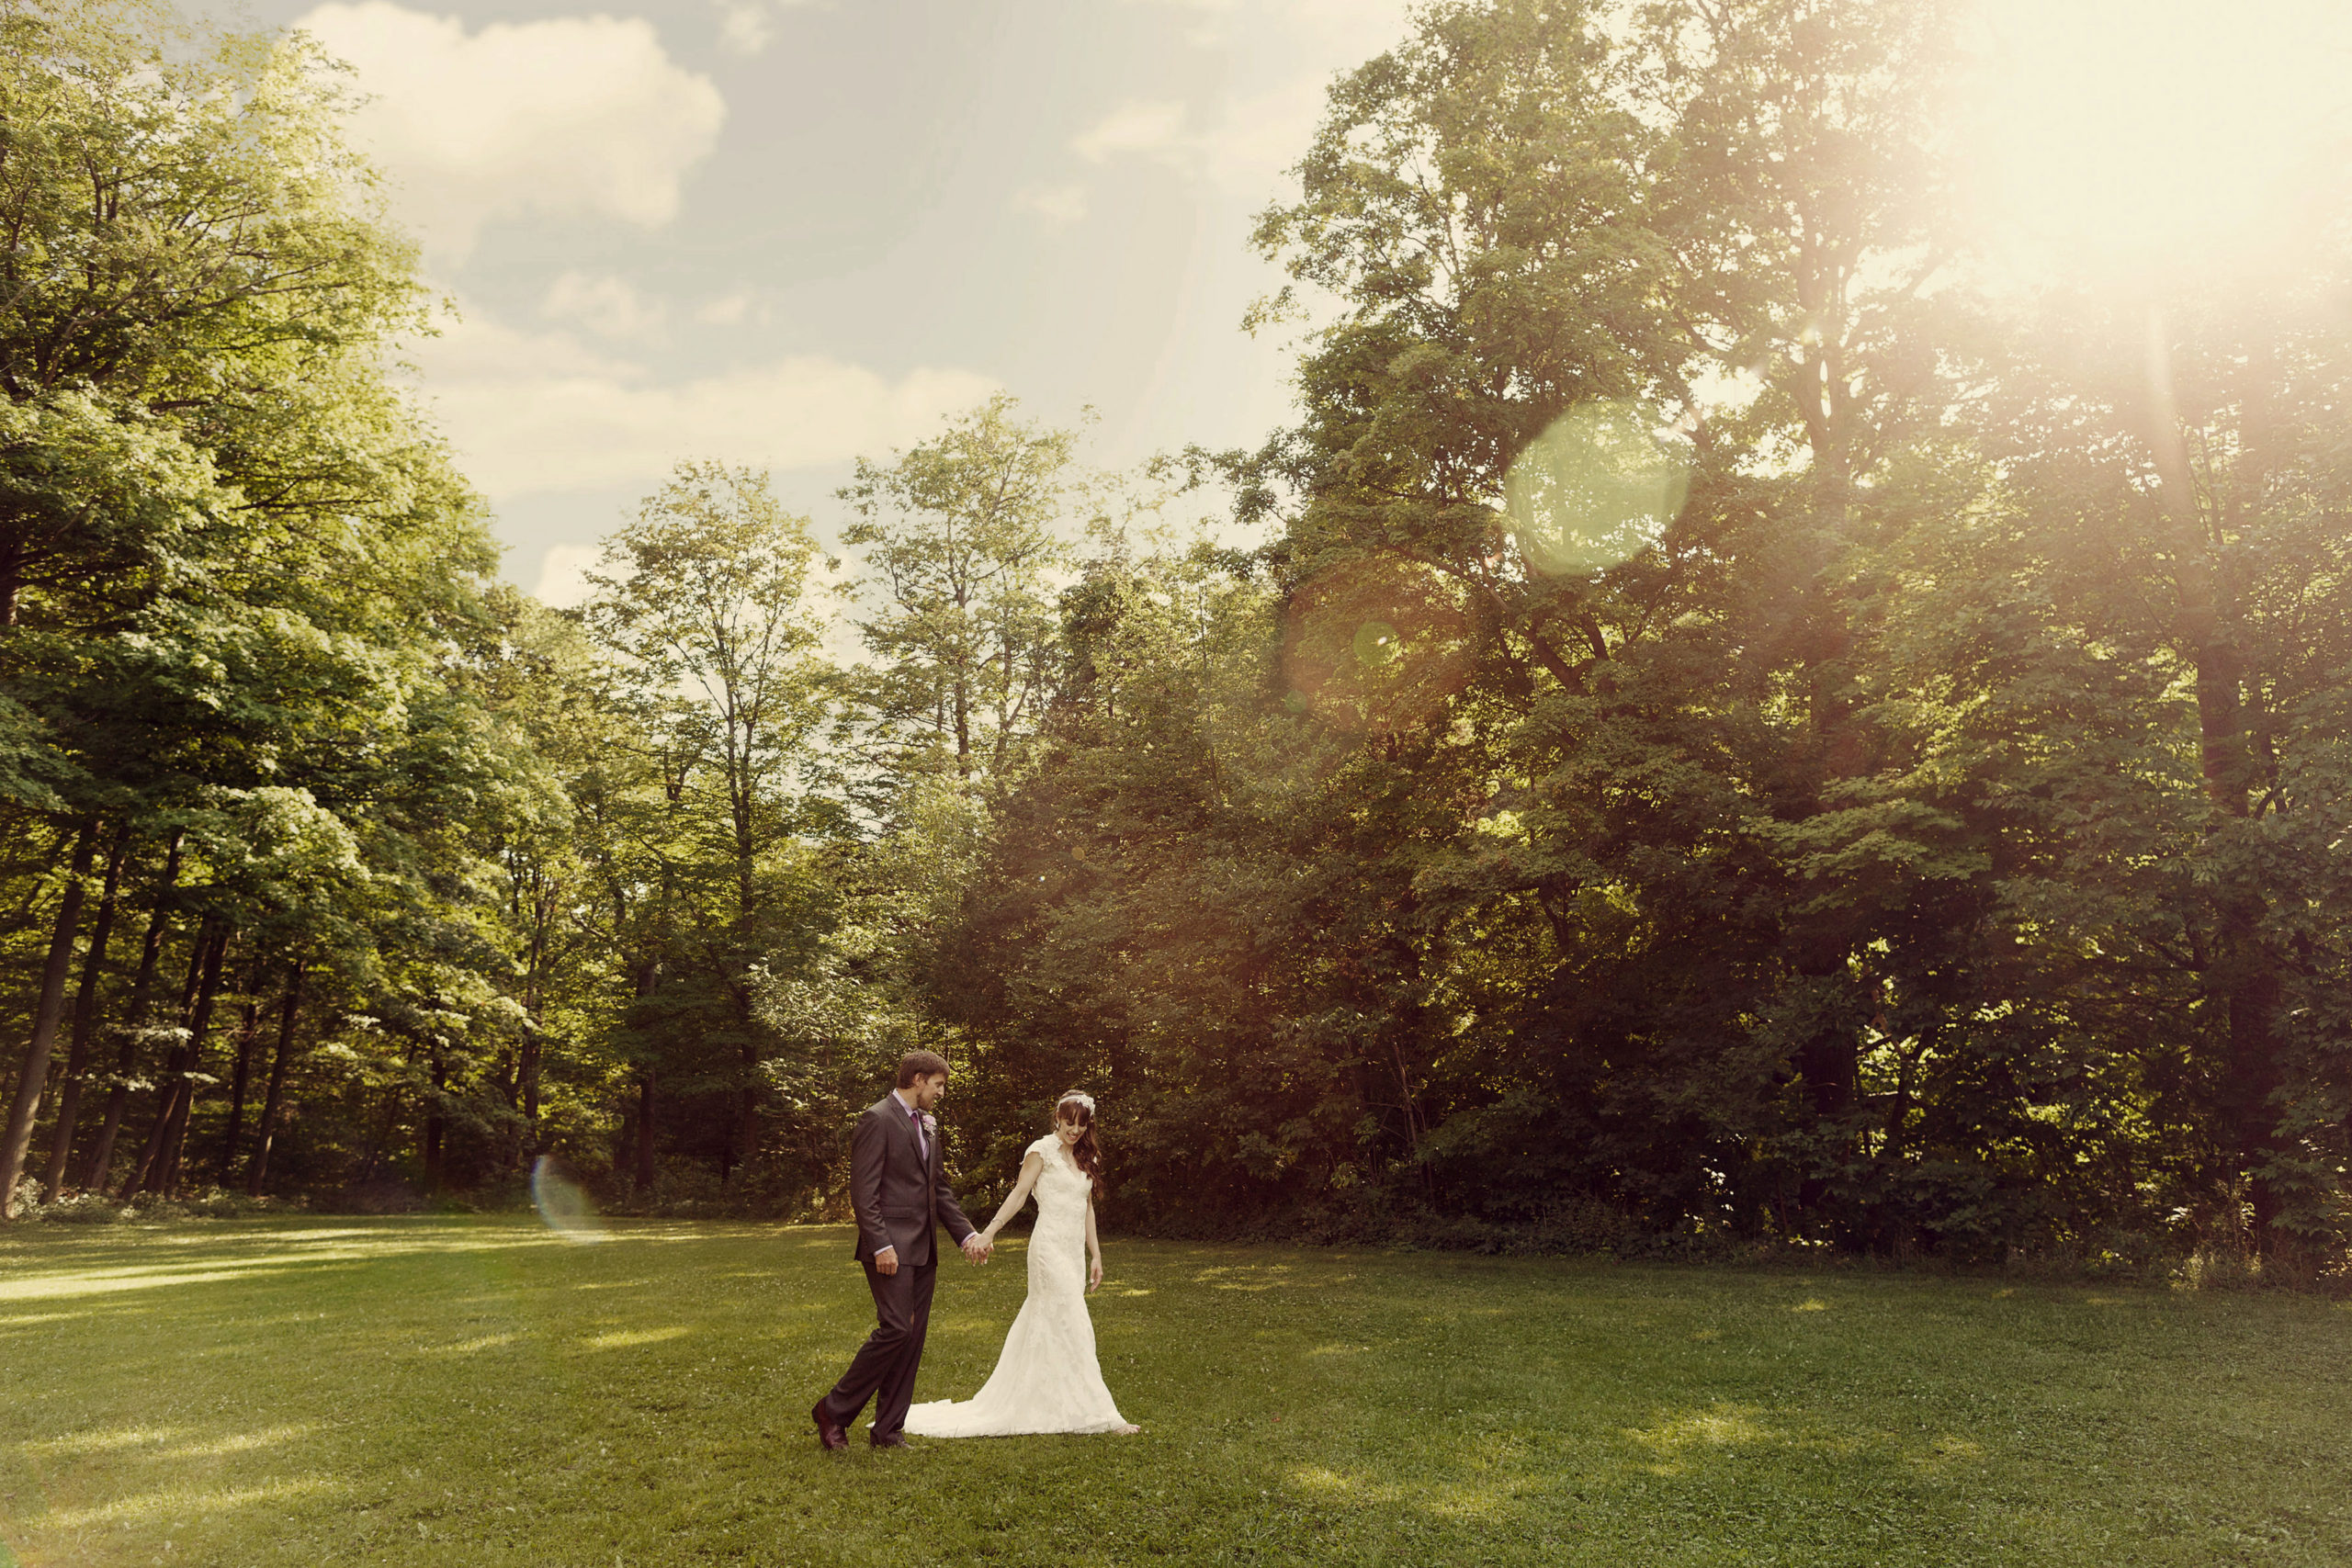 c Balls Falls Portrait Wedding Field Trees Sunlight